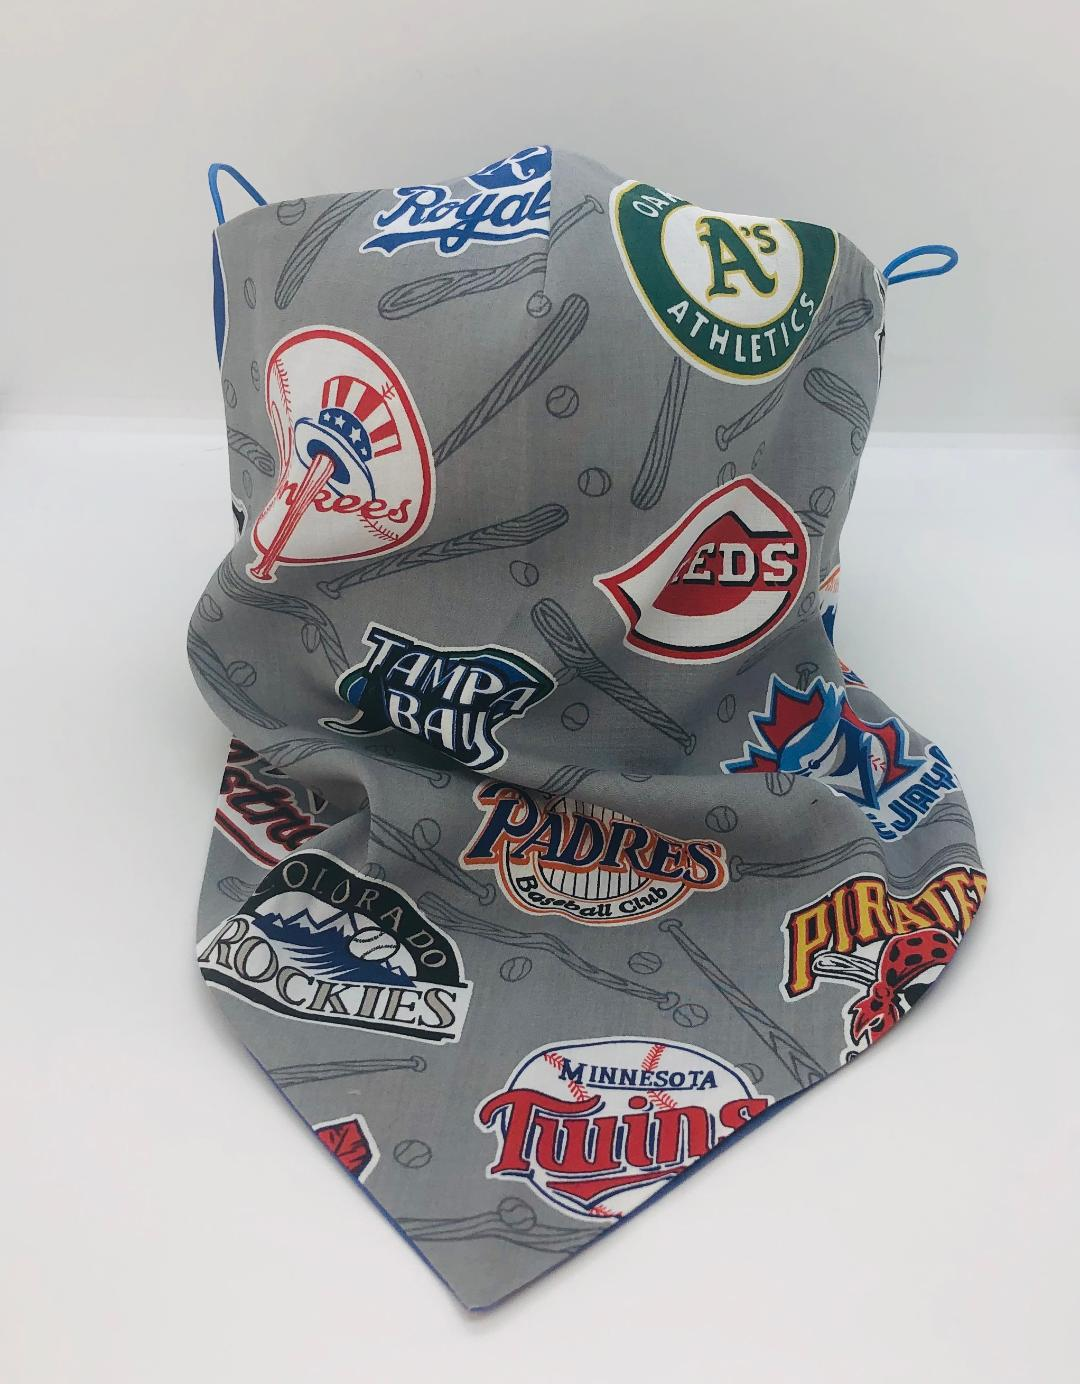 Cotton BaseBall Club bandana by LudmilaCouture yankees reds padres rampa bay gator